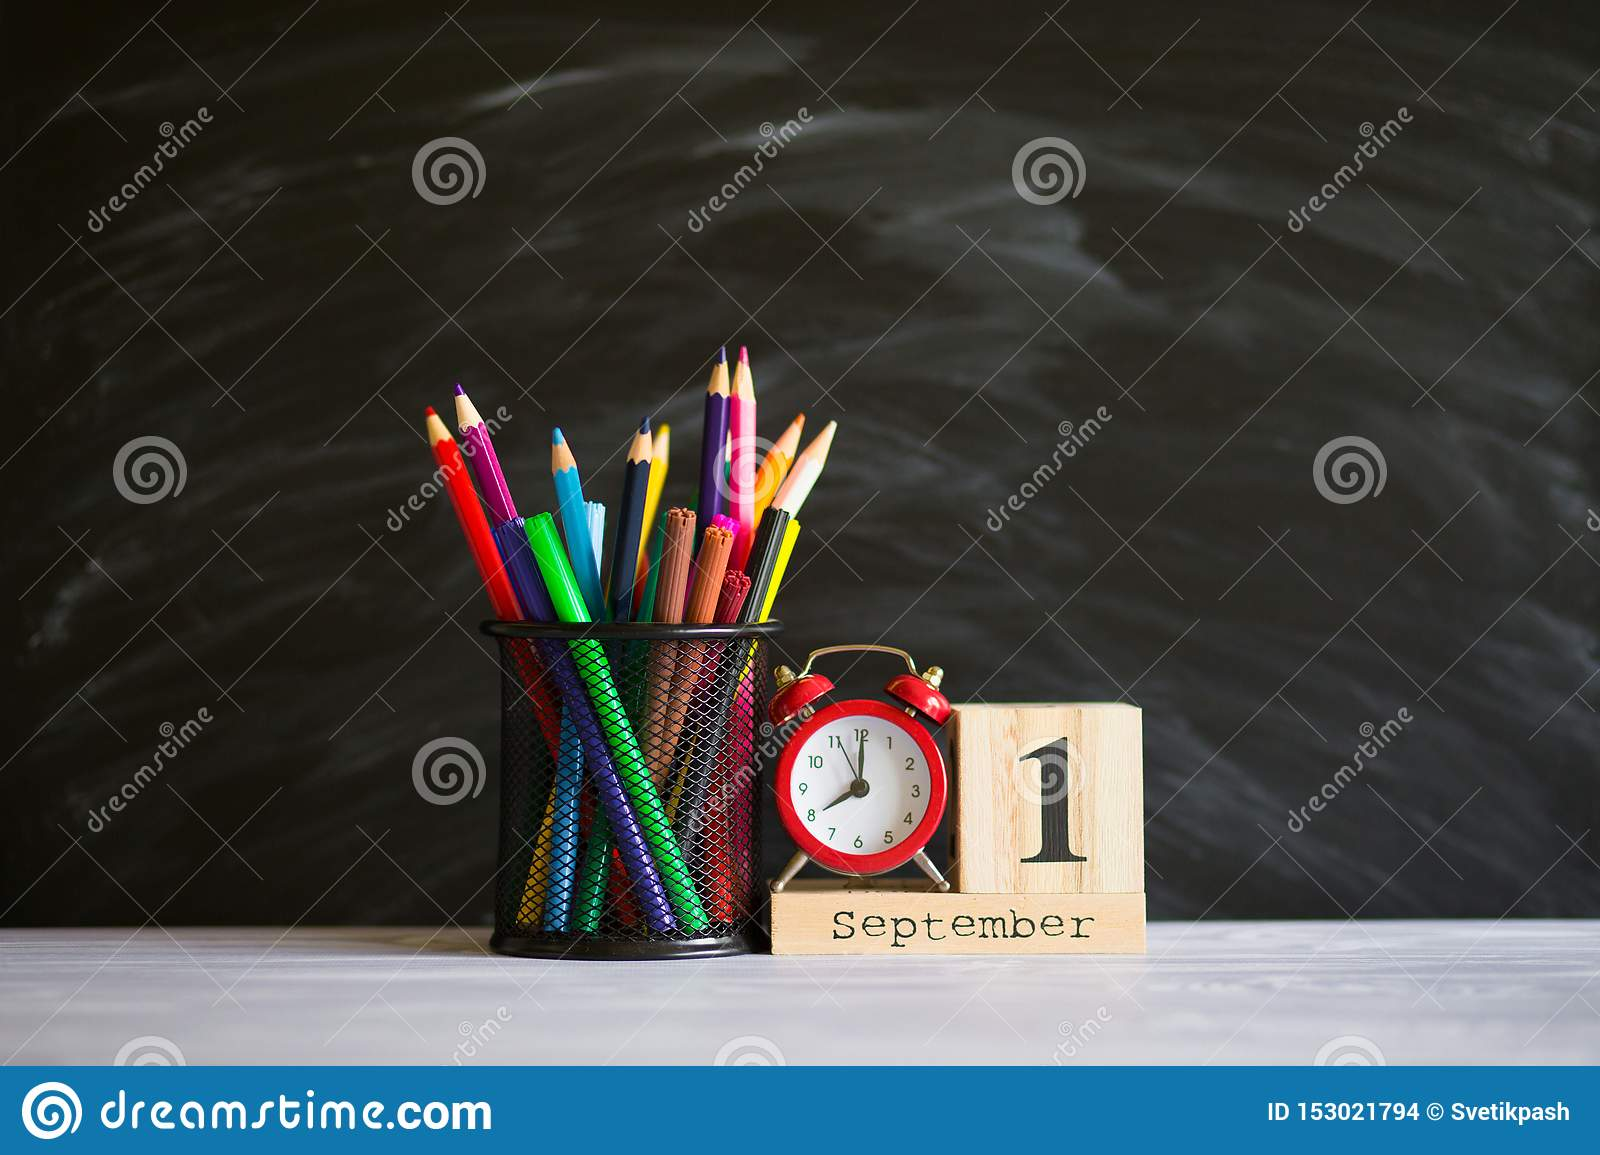 Concept back to school. Re alarm clock with color pencils and wooden calendar set on 1st september on blackboard background.